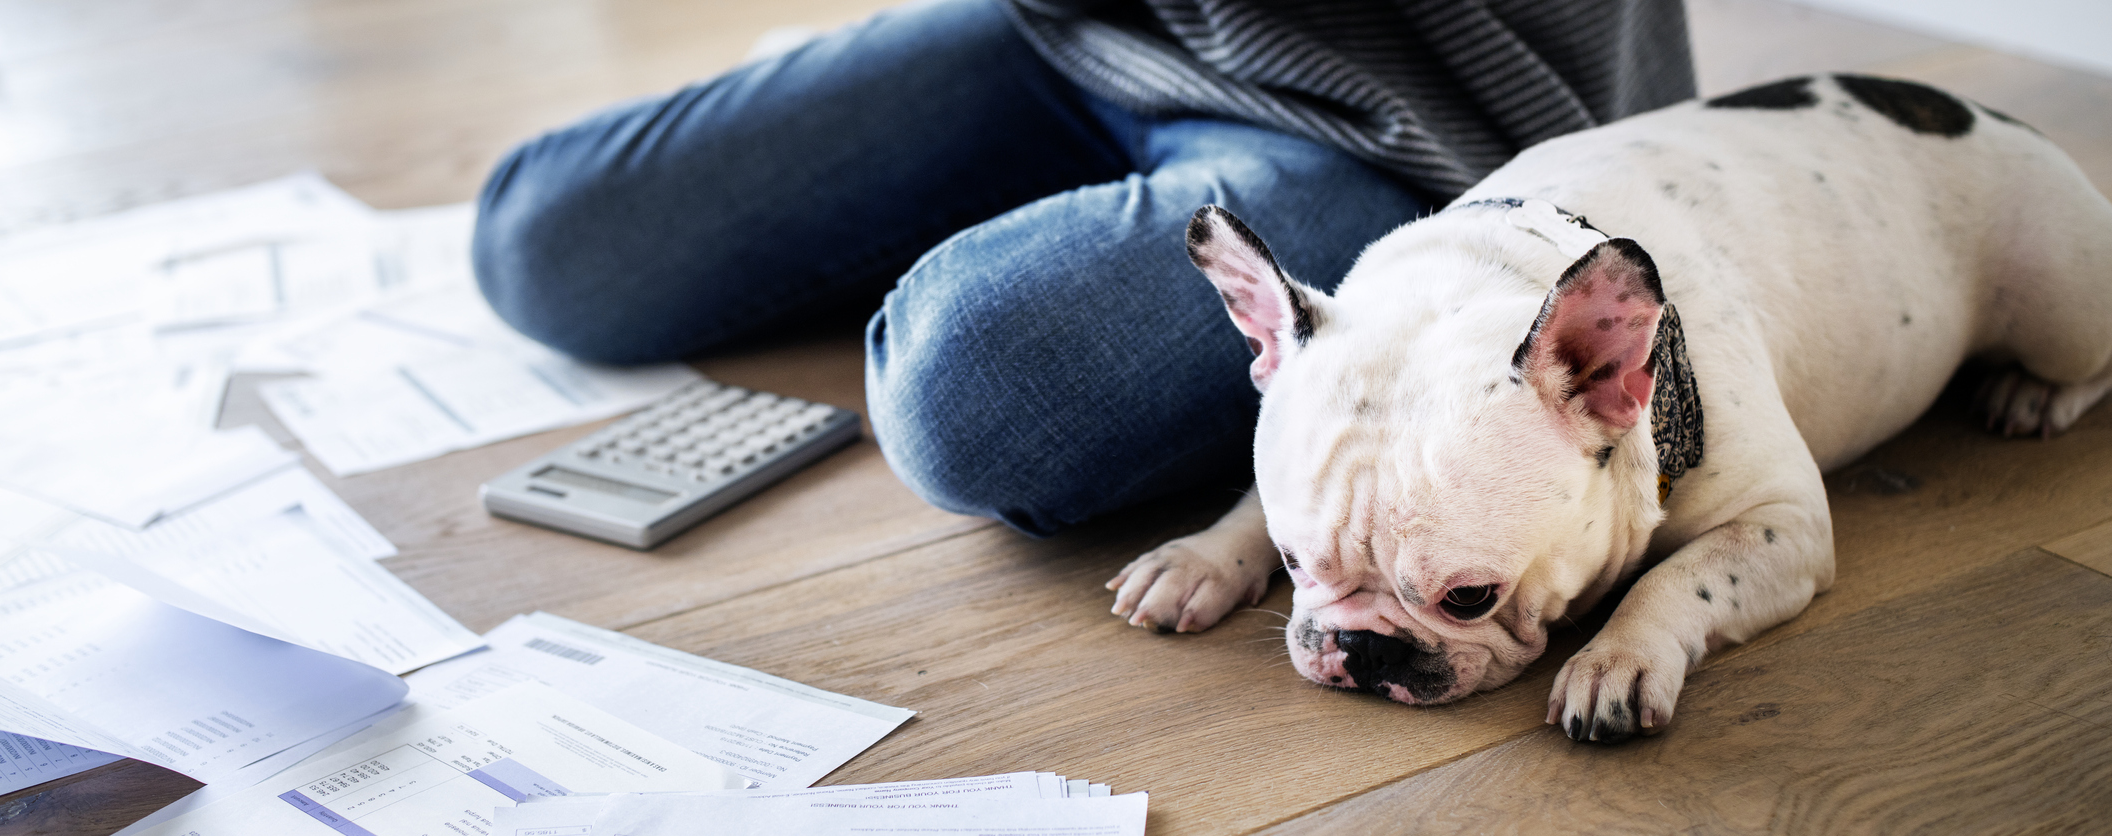 person sitting on the floor with a bulldog beside her, with financial statements and calculator spread out in front of her